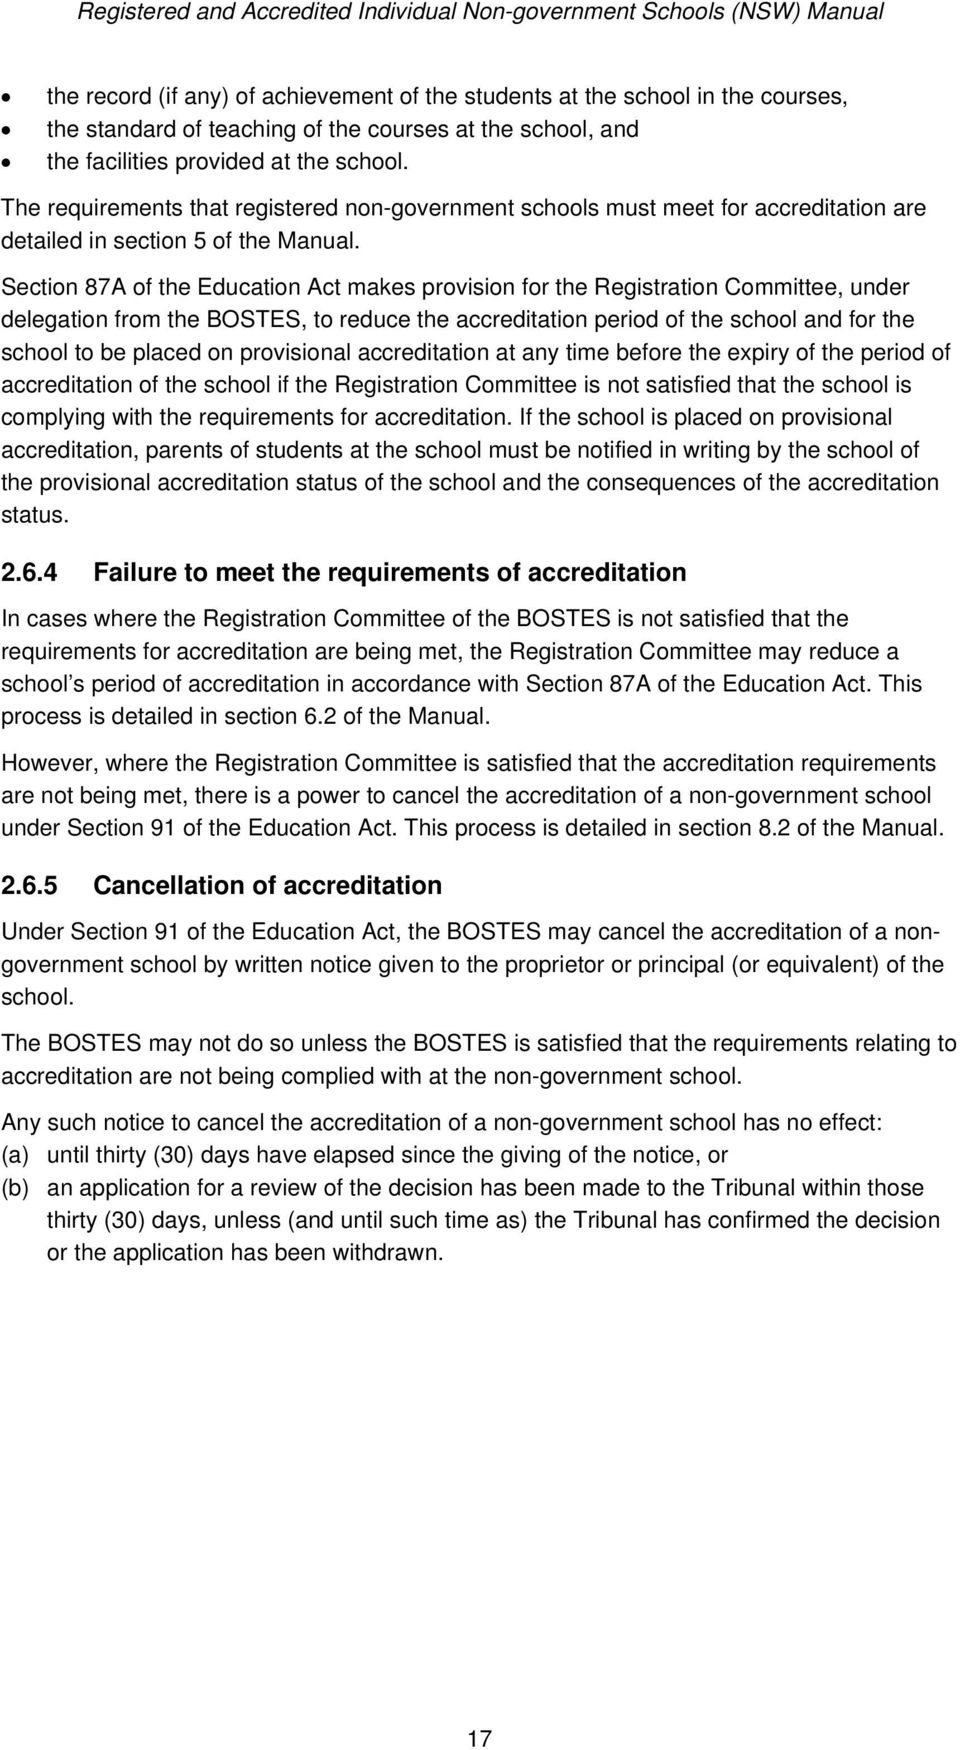 Section 87A of the Education Act makes provision for the Registration Committee, under delegation from the BOSTES, to reduce the accreditation period of the school and for the school to be placed on